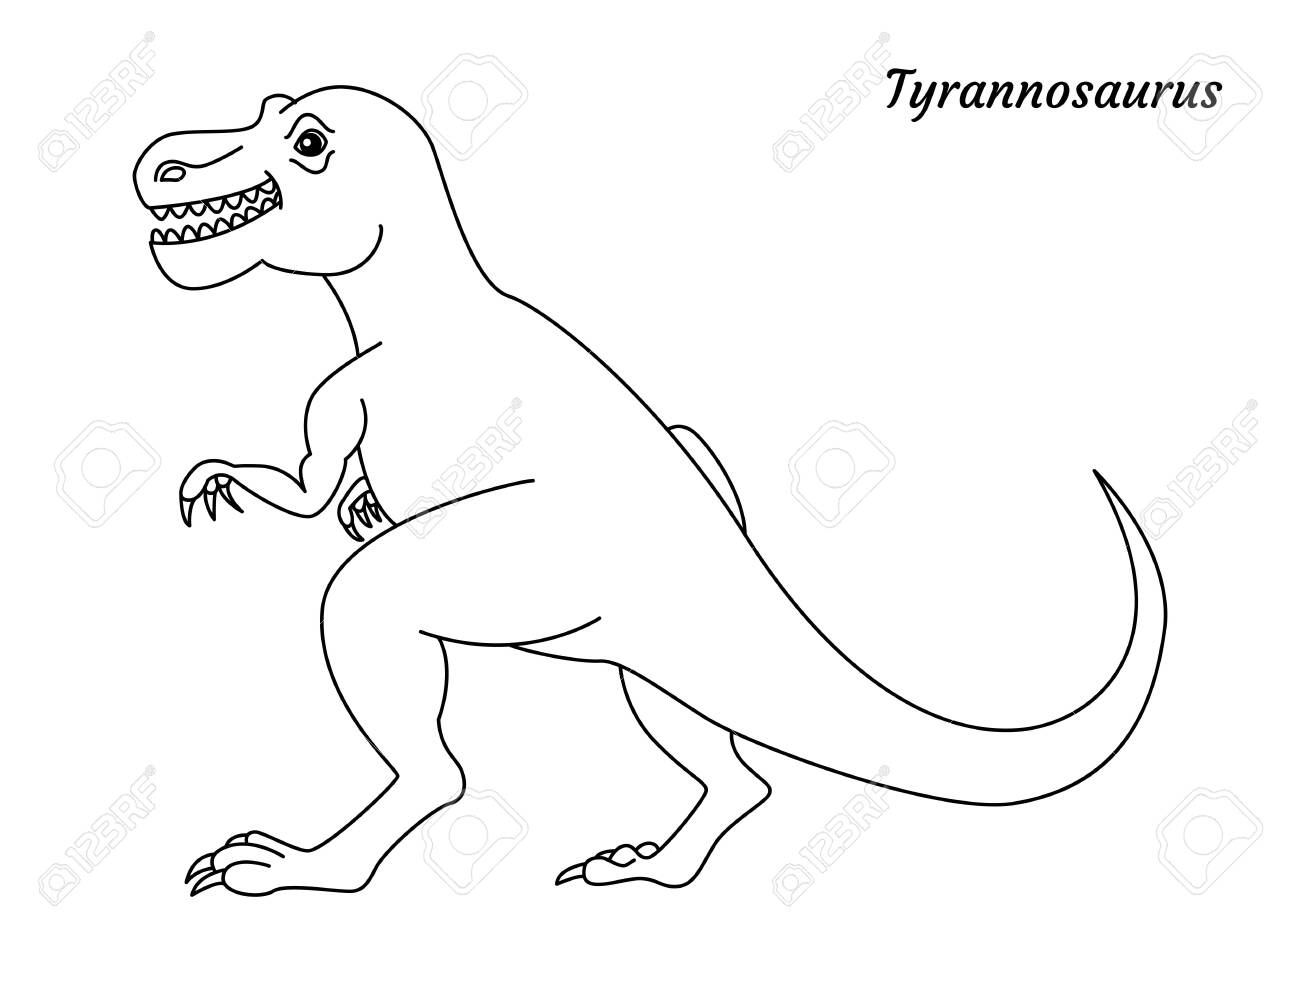 Coloring Page Outline Tyrannosaurus Dinosaur Vector Illustration Royalty Free Cliparts Vectors And Stock Illustration Image 143409974